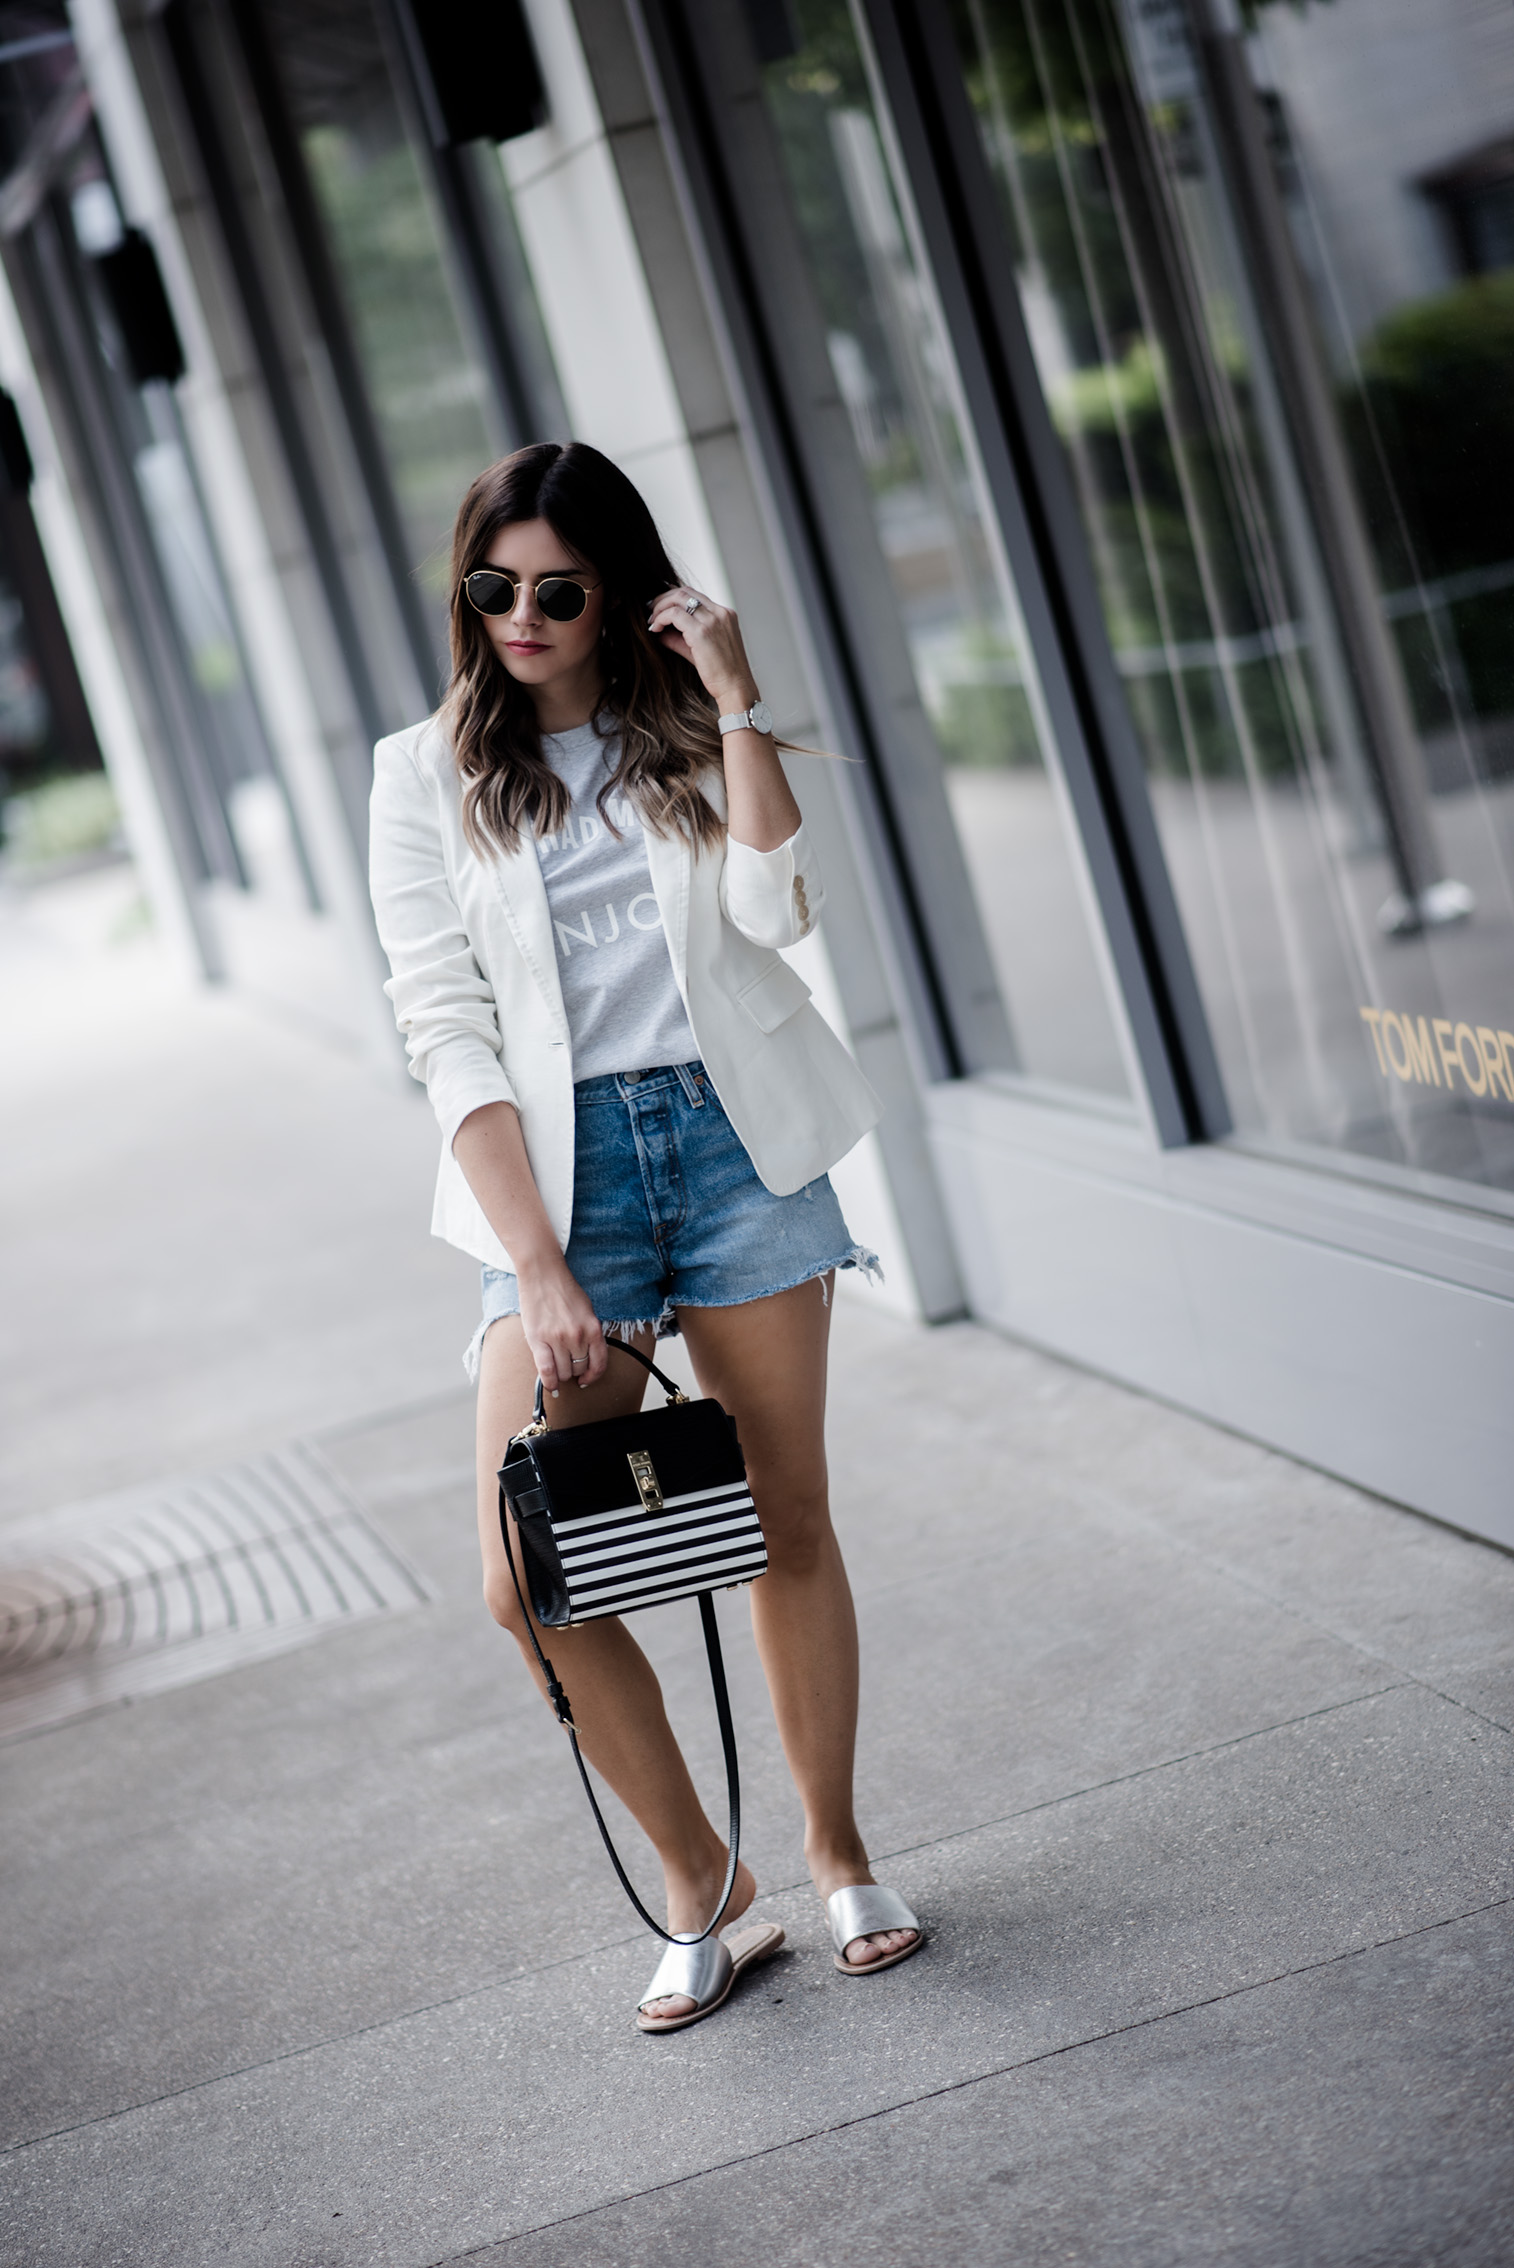 Tiffany Jais Houston fashion and lifestyle blogger   graphic tee outfits, how to wear a blazer with shorts, street style summer, casual outfit ideas, blazer outfits,